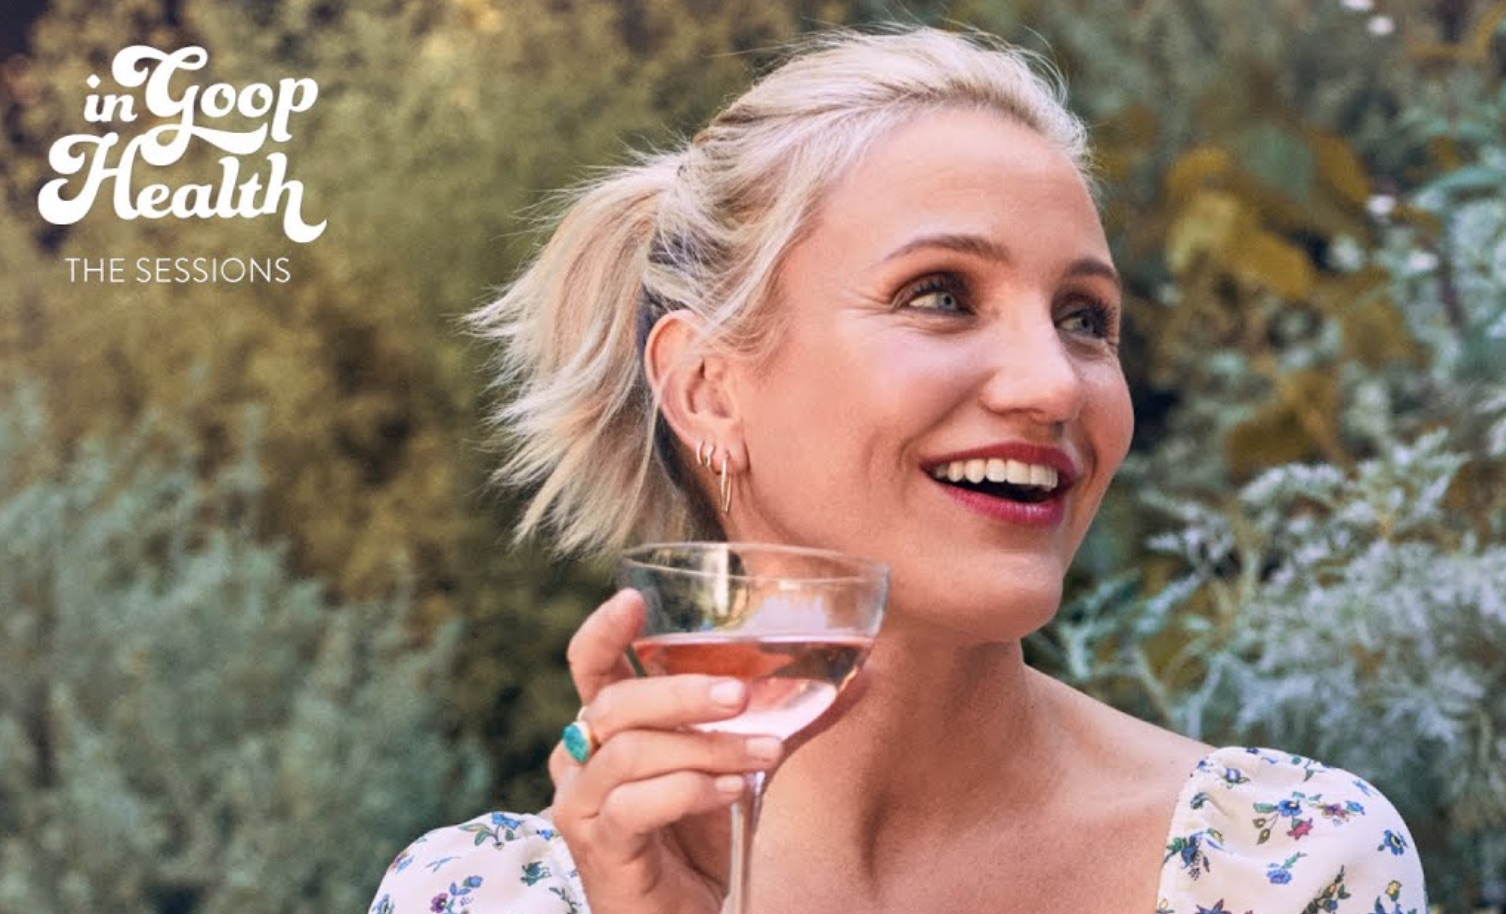 Cameron Diaz Joins Gwyneth Paltrow For 'In Goop Health: The Sessions' Livestream